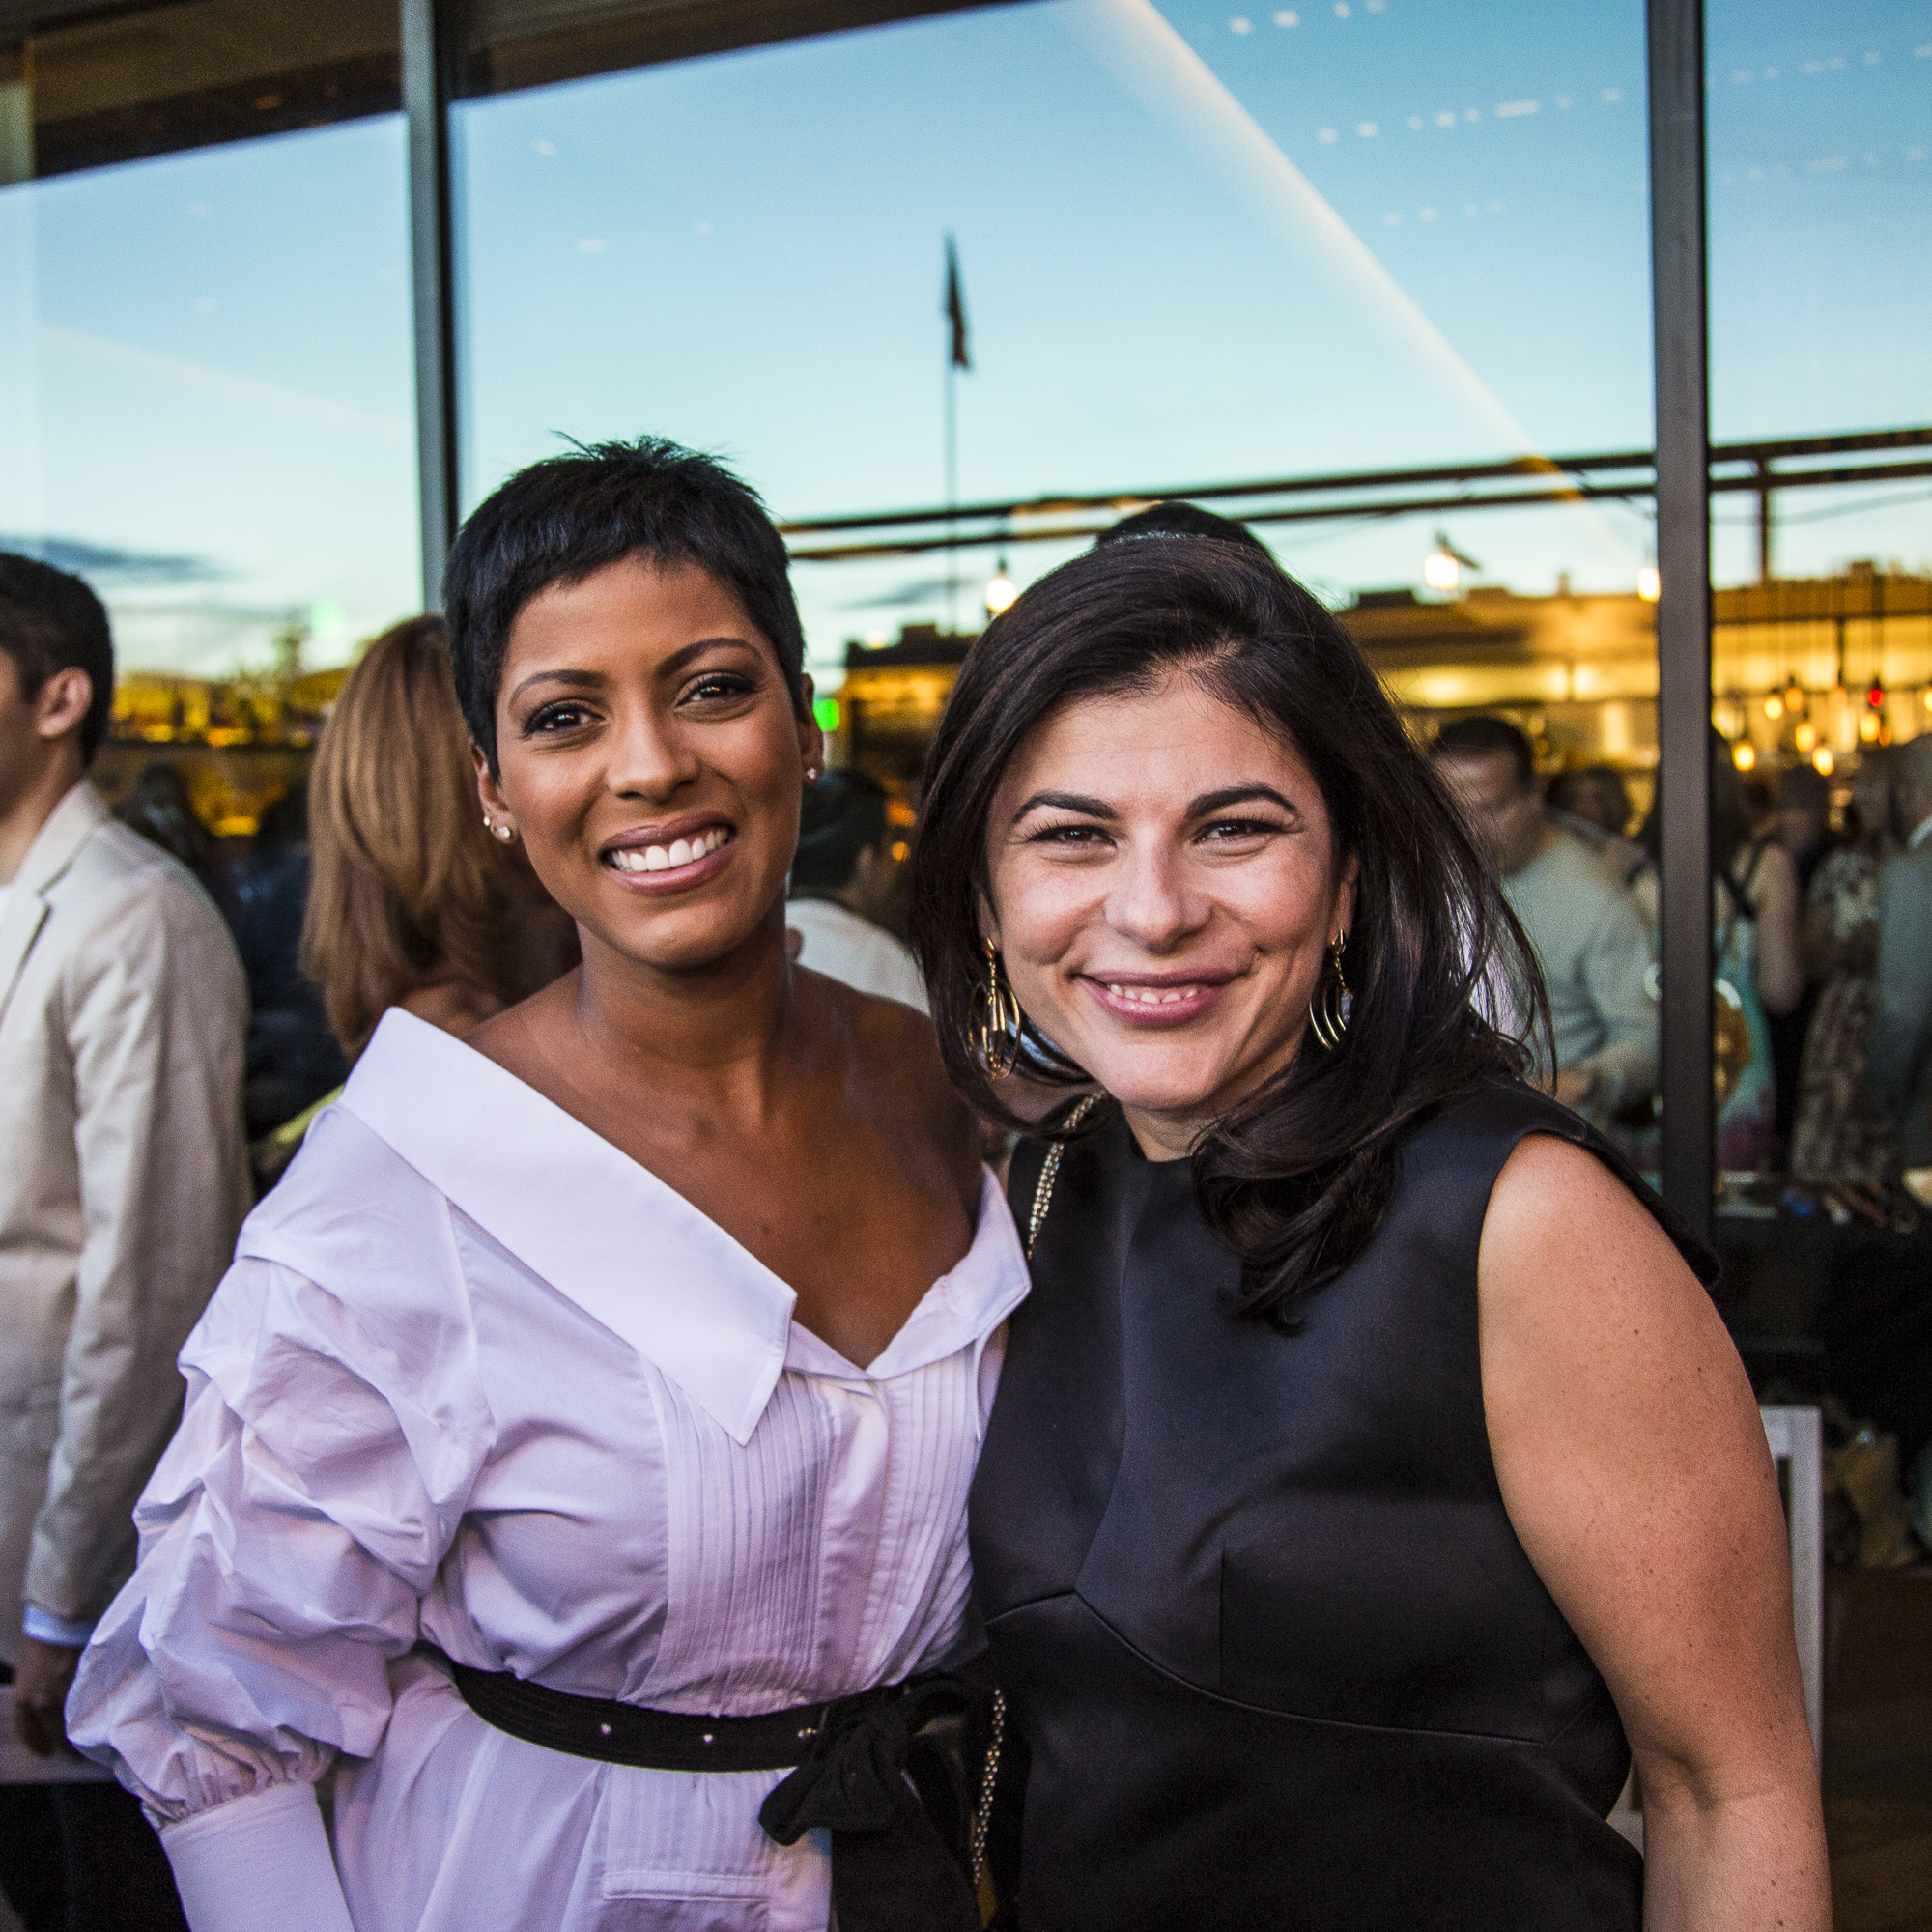 Tamron Hall and mkgalleryamp; Wine EIC Nilou Motamed attend the welcome reception at the mkgalleryamp; Wine Classic in Aspen.